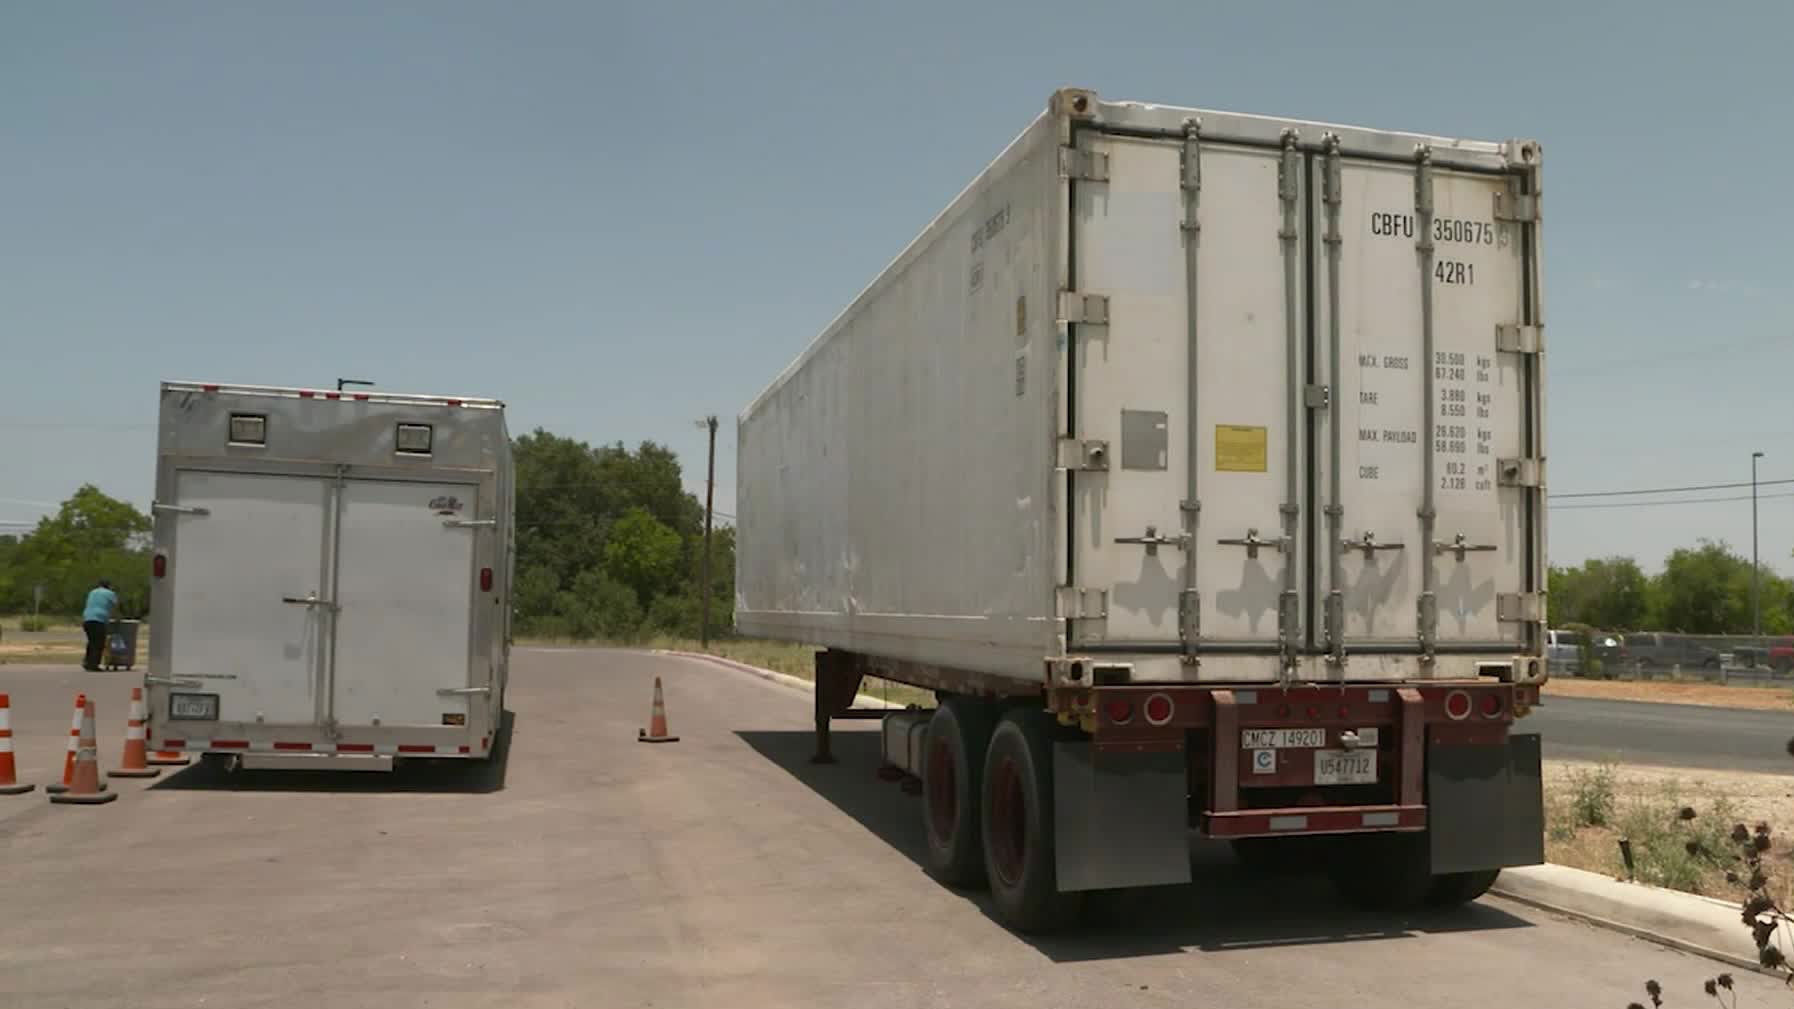 Refrigerated trailers arrive in San Antonio.